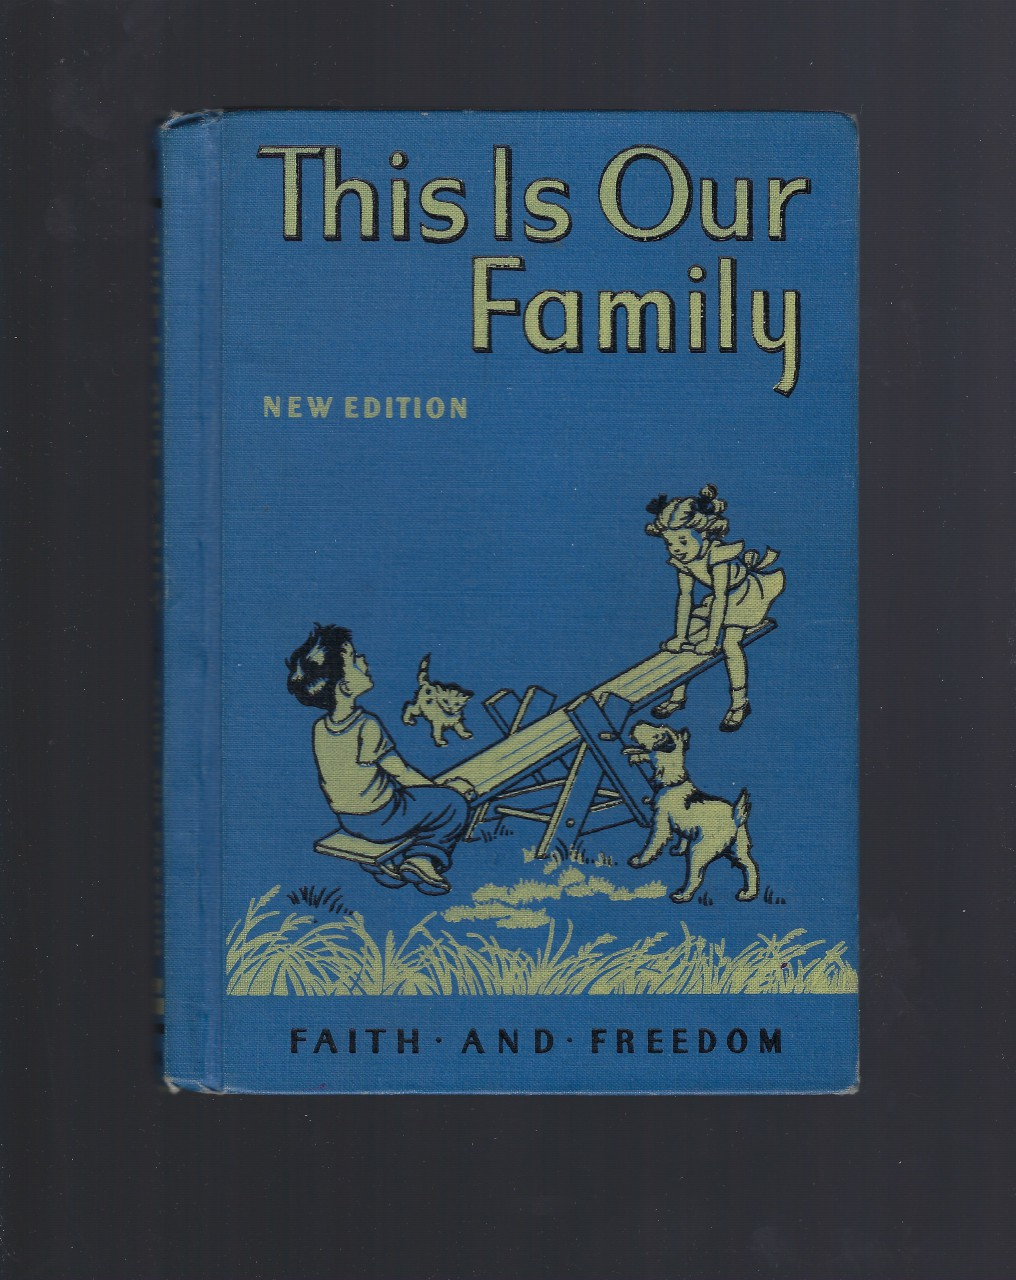 This Is Our Family Primer 1951 Faith and Freedom Reader Very Nice!, Sister M. Marguerite